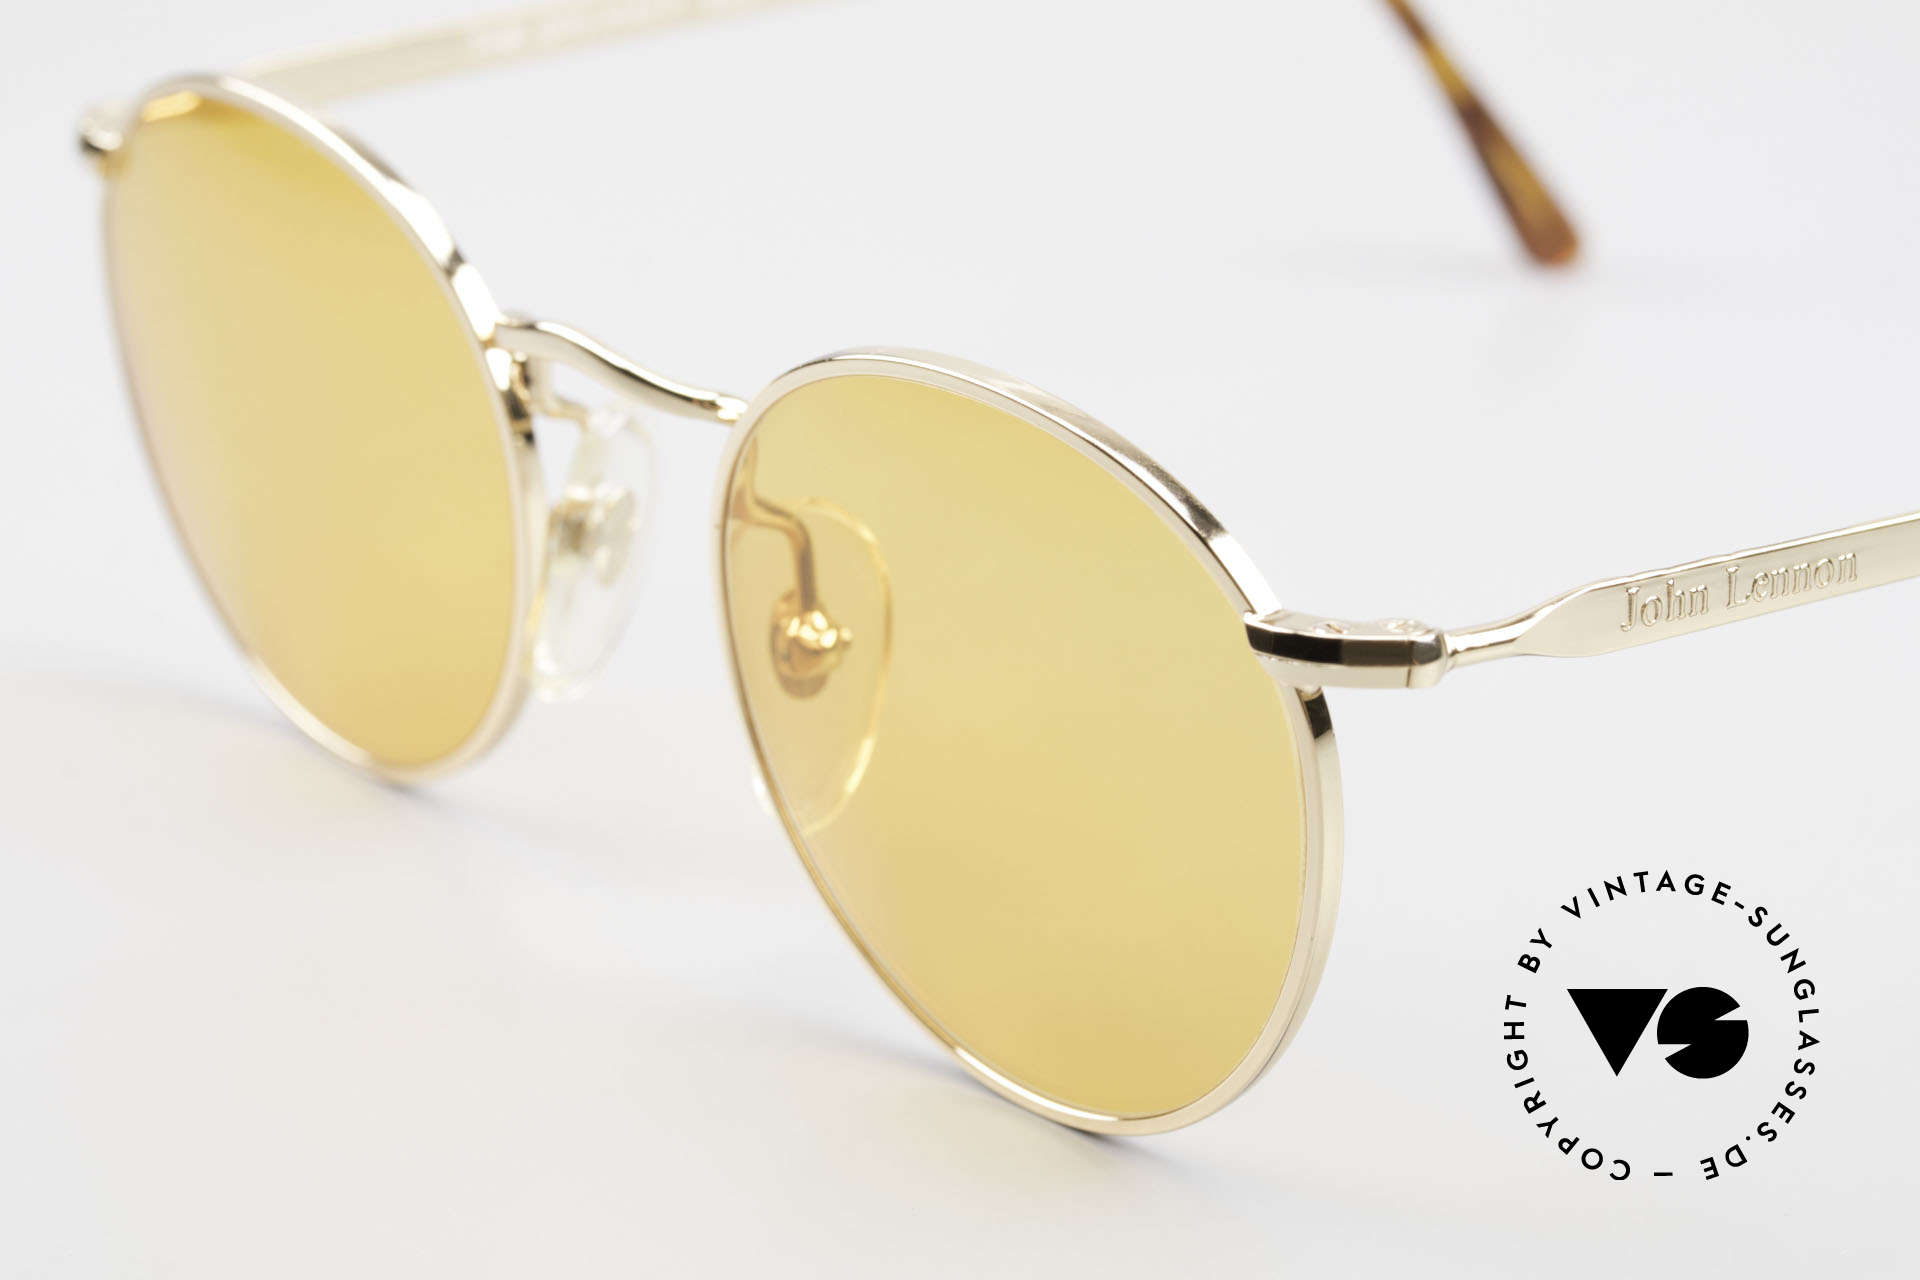 John Lennon - The Dreamer Extra Small Round Sunglasses, orange sun lenses (wearable at night); rare and unique!, Made for Men and Women